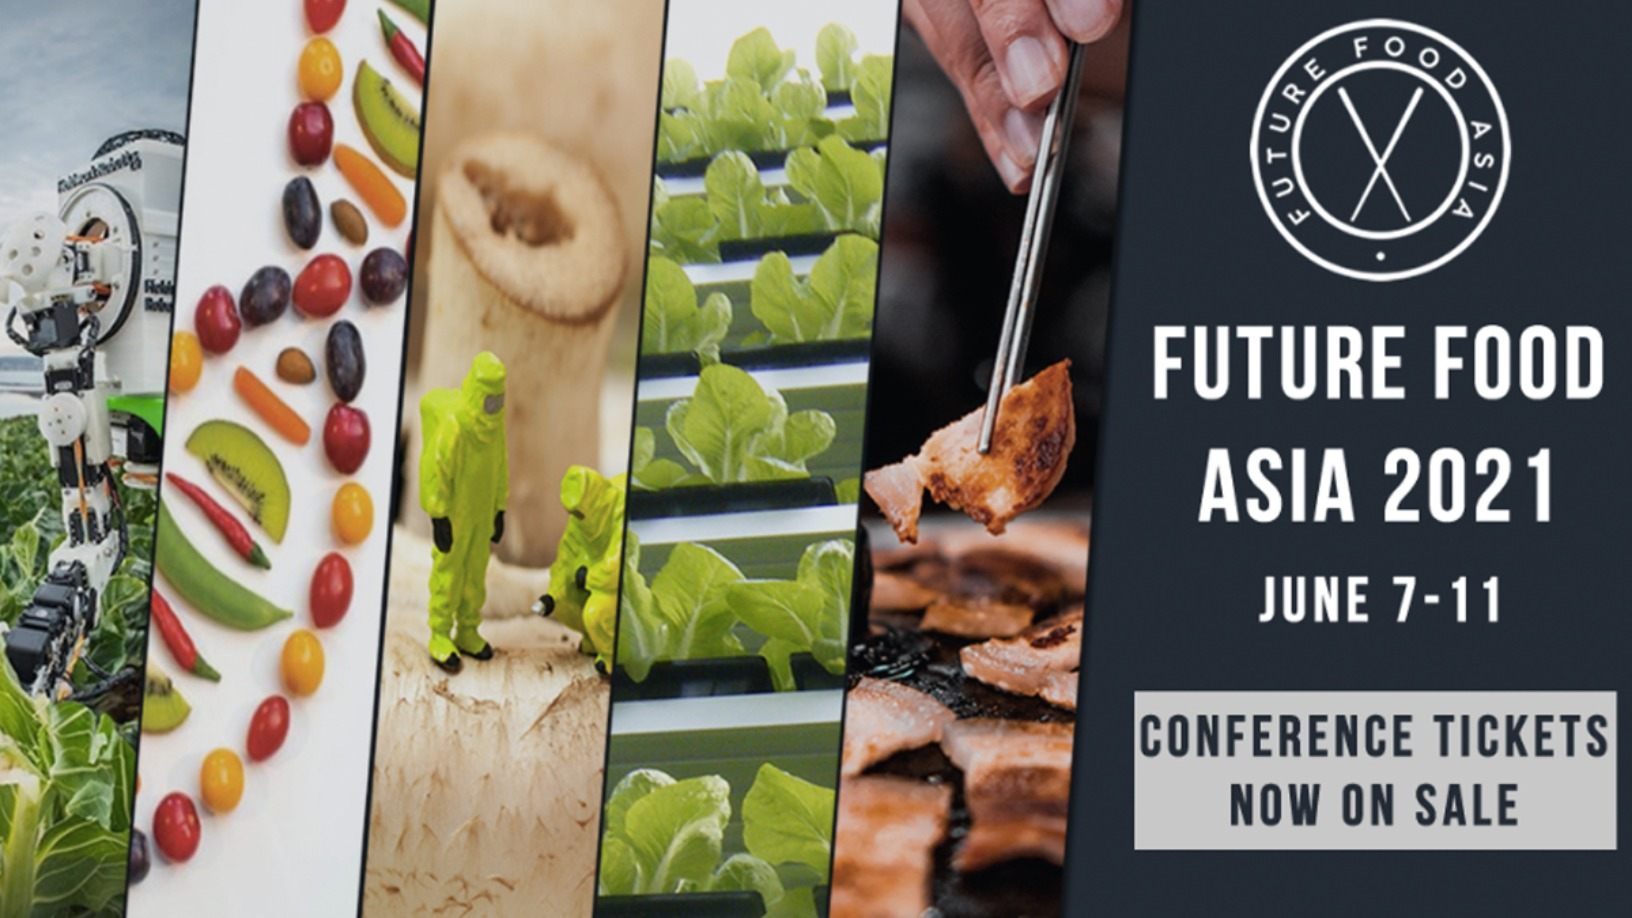 Future Food Asia 2021 announces finalists for $100,000 prize